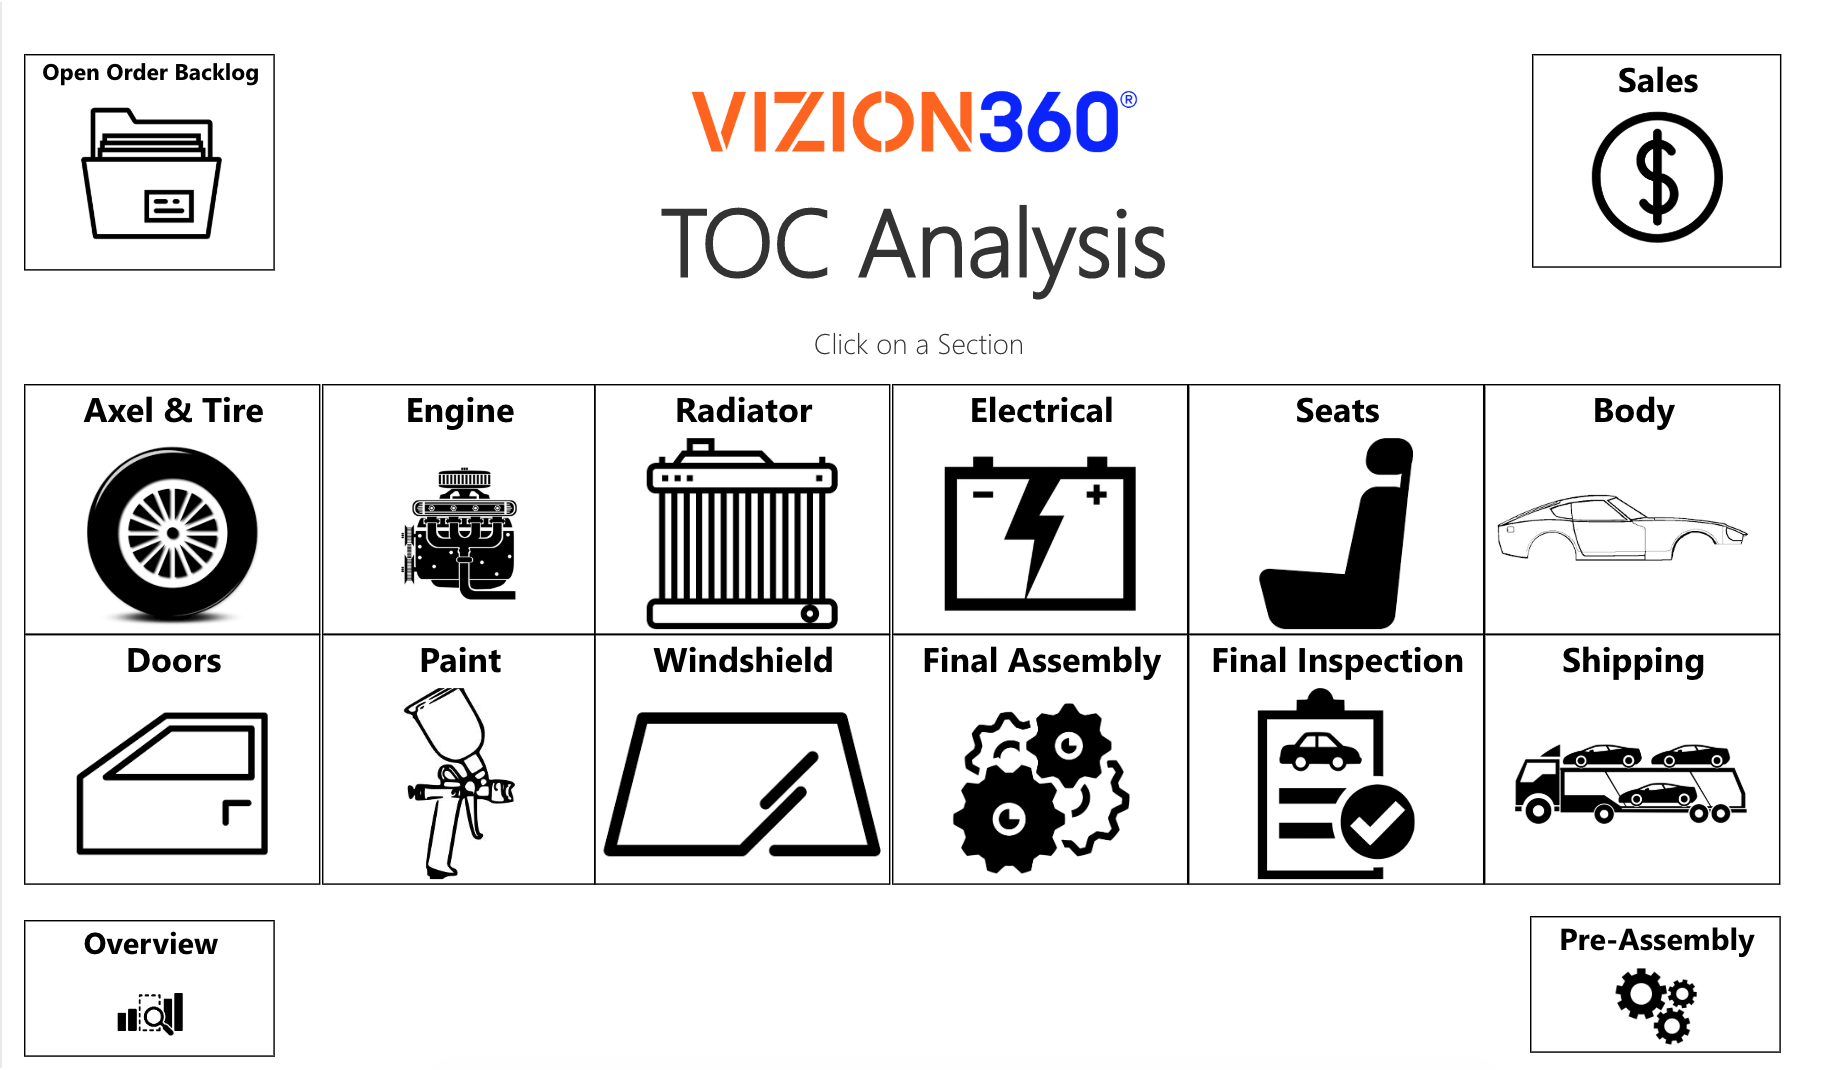 Business Intelligence: TOC Analysis Dashboards are Customized to Your Shop Floor